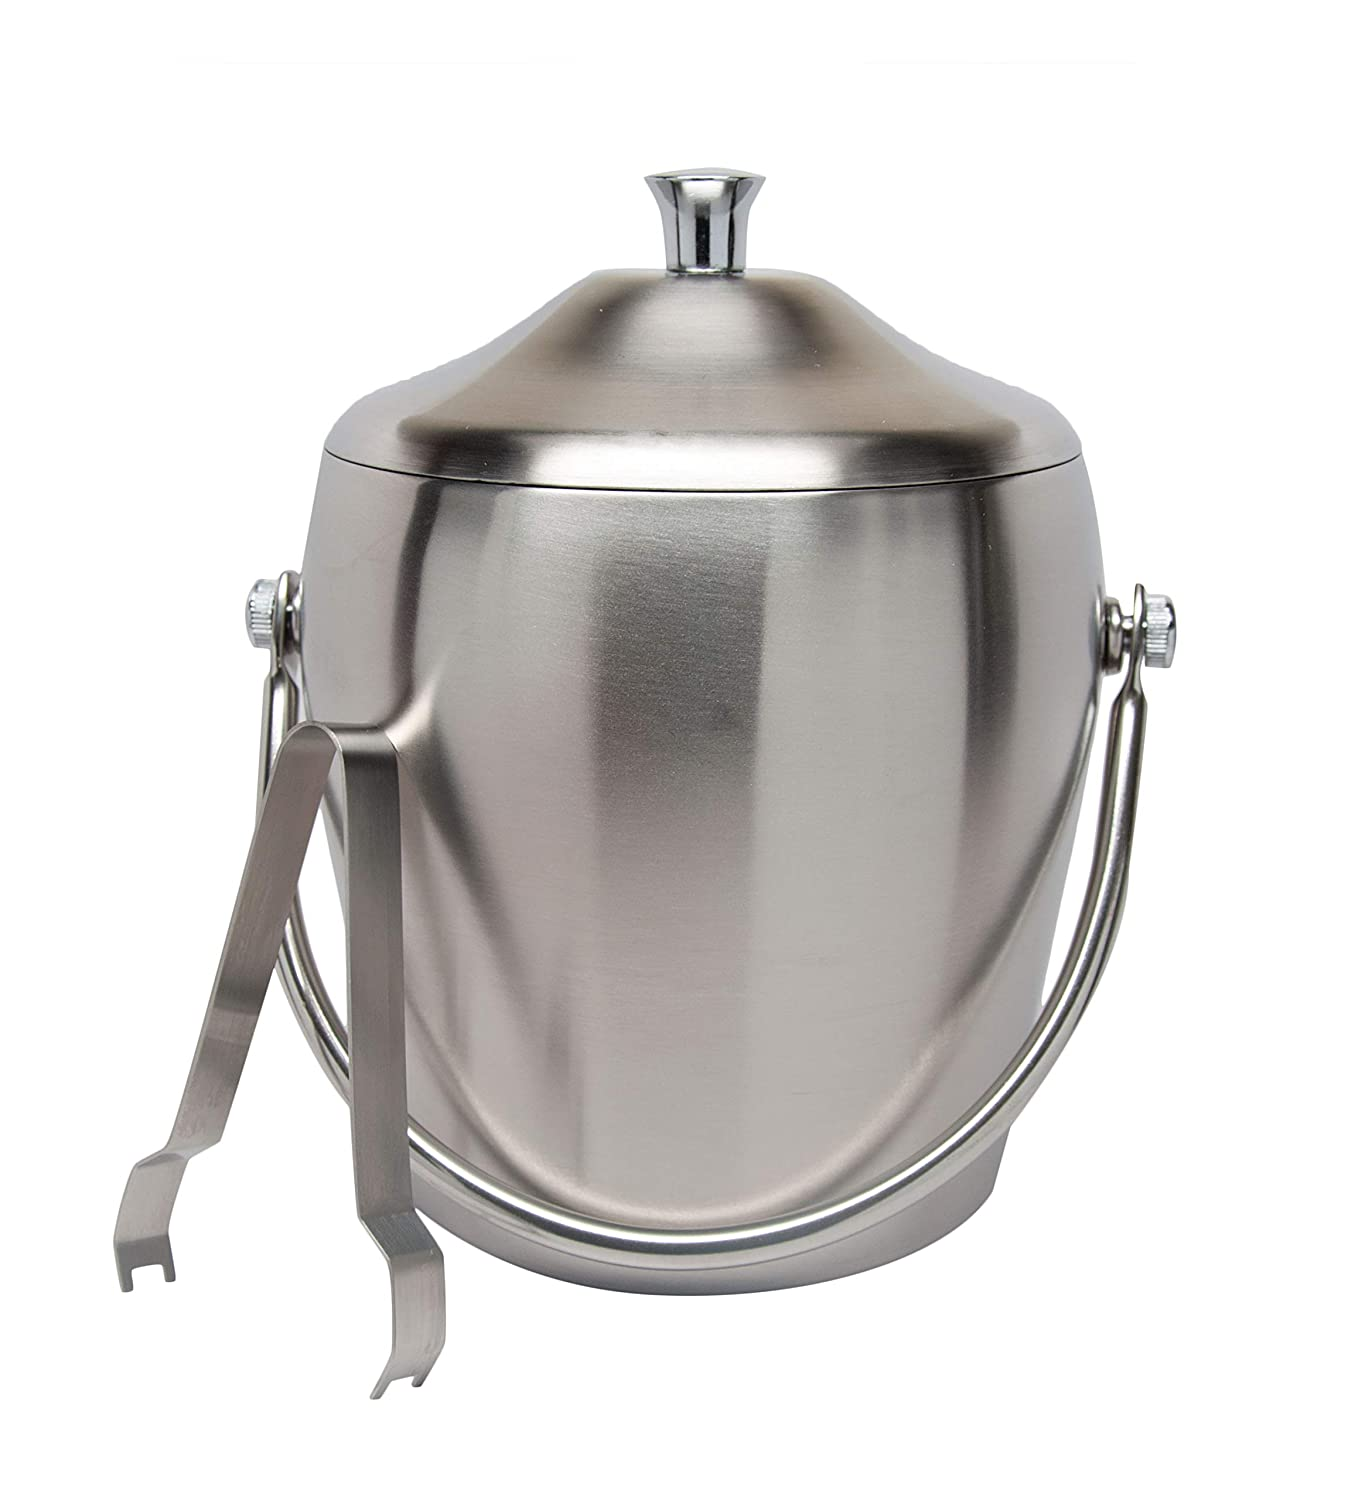 Elegant Stainless Steel Double Walled Ice Bucket Cocktail Set with Lid Tongs Set Bar Accessory Set 7.5 Inch Parties Kitchen Storage Party Supplies Accessories Xena X-16475-6-KIT8